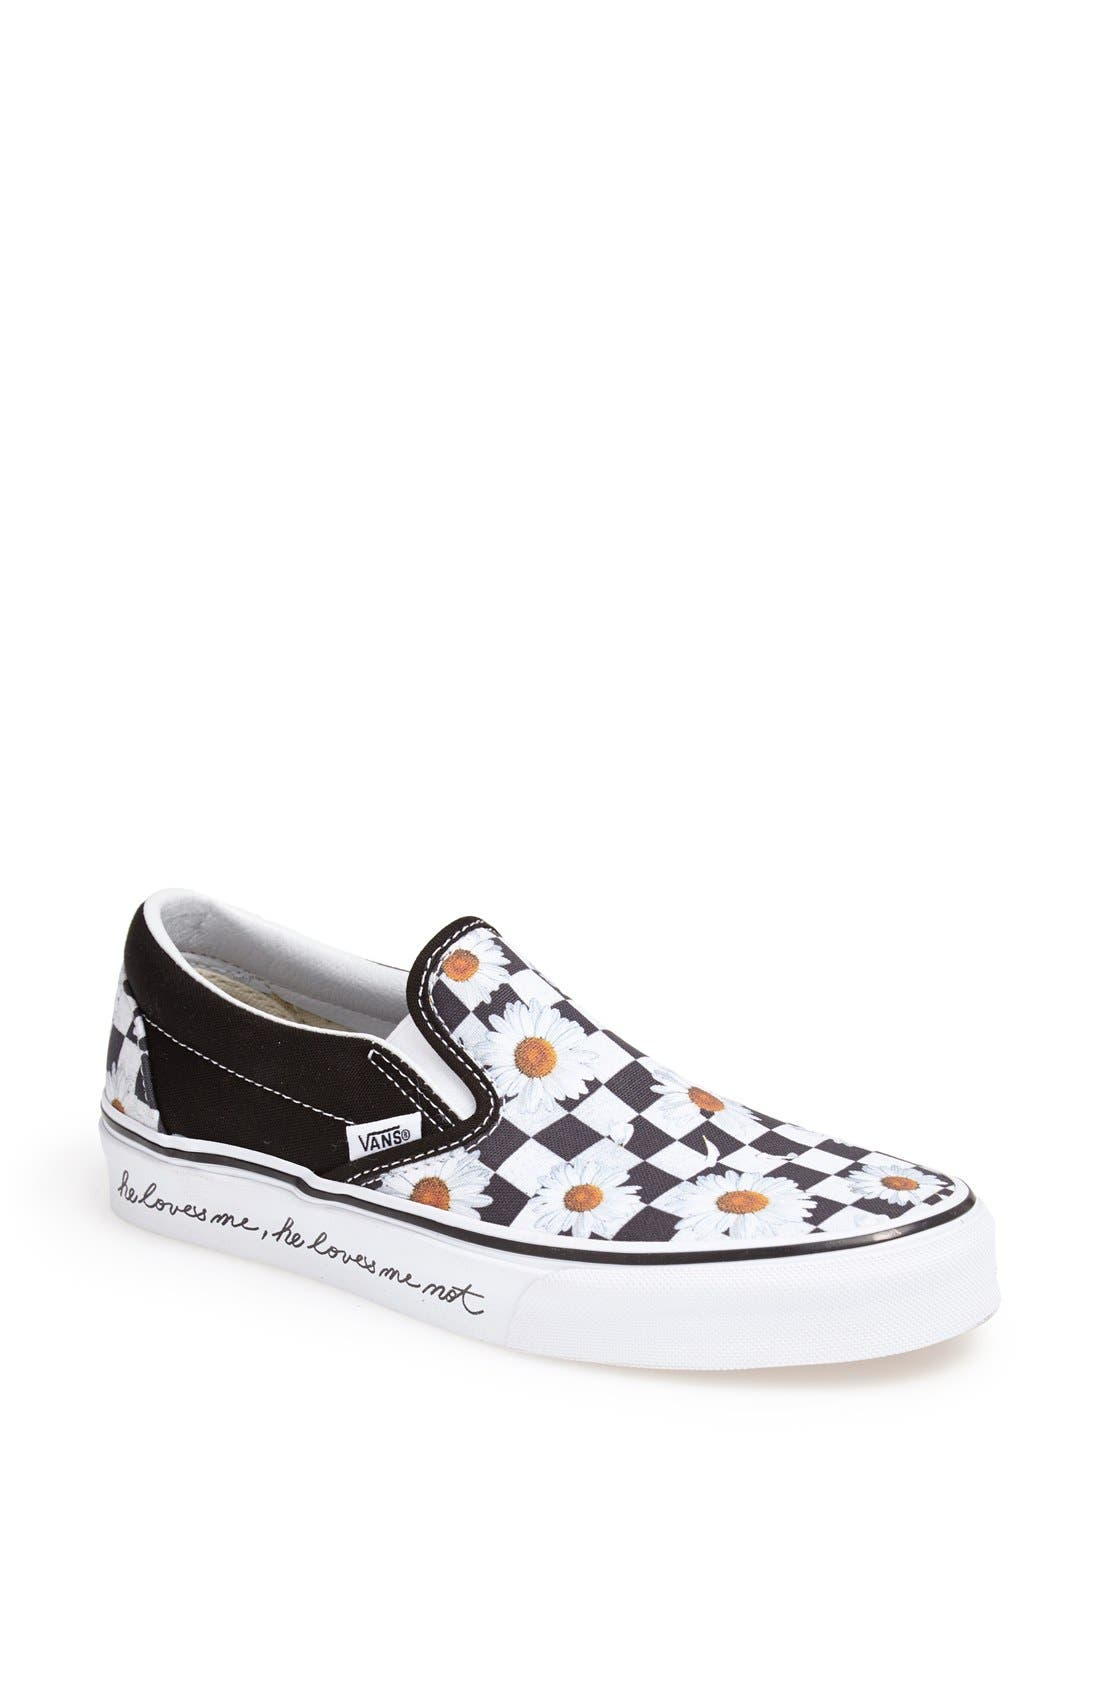 Alternate Image 1 Selected - Vans 'He Loves Me, He Loves Me Not' Slip-On Sneaker (Women)